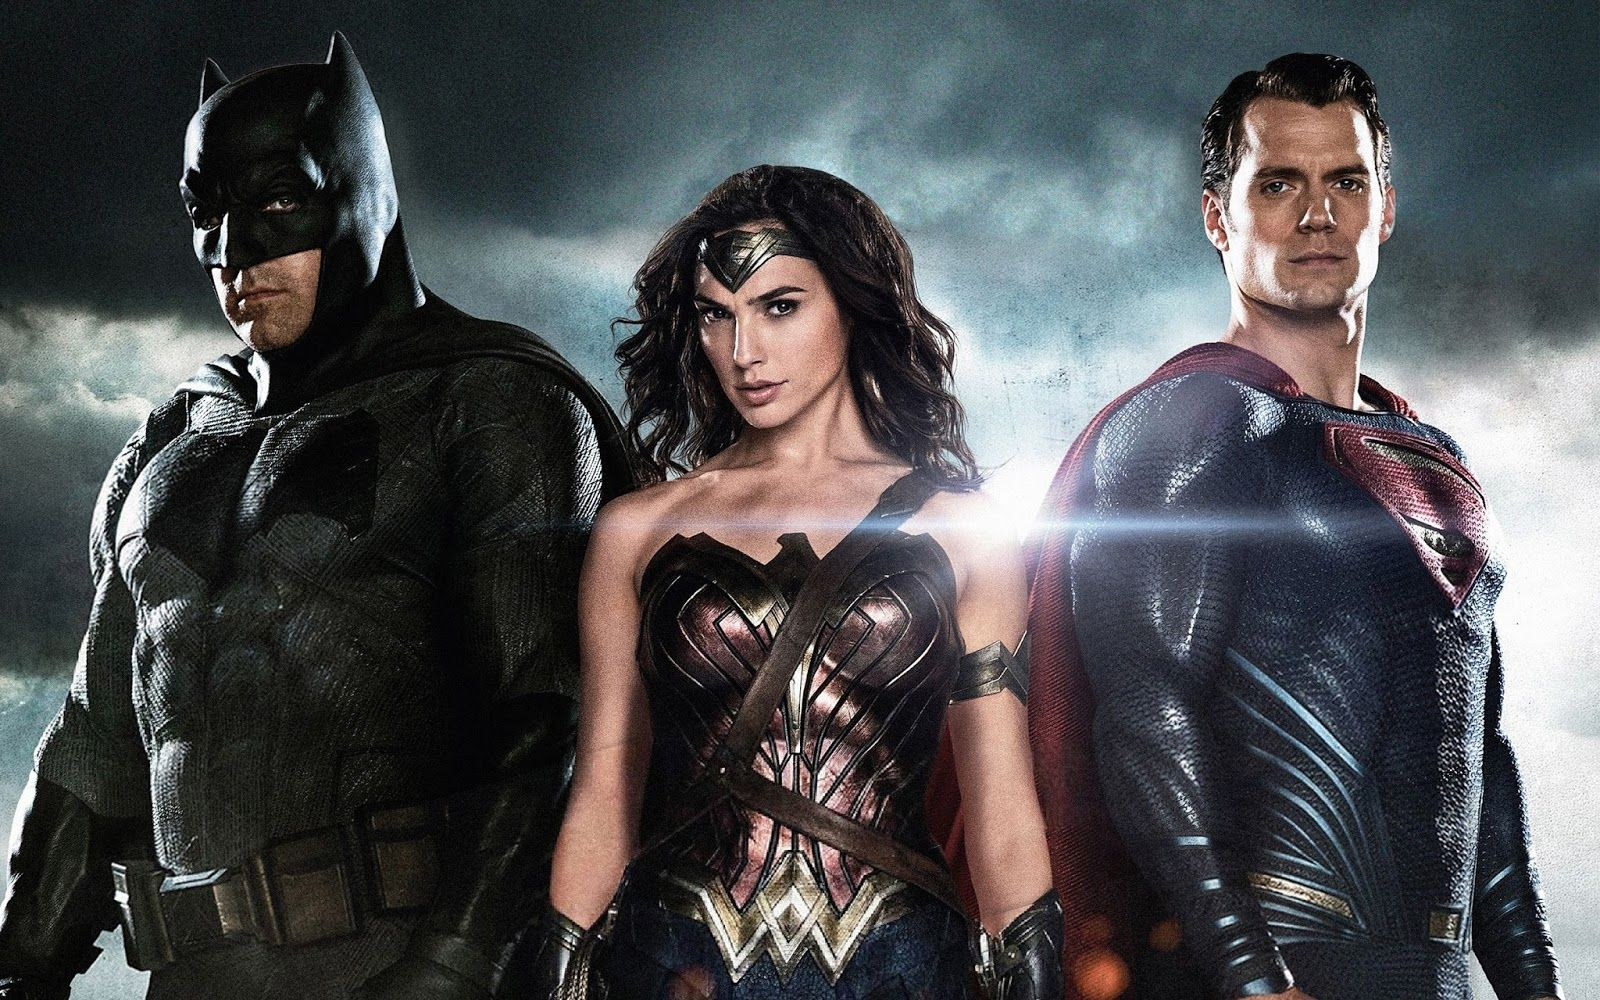 Hollywood wallpapers fans share 1024768 hollywood movie hollywood wallpapers fans share 1024768 hollywood movie wallpapers hd 70 wallpapers dc comicsdawn voltagebd Images